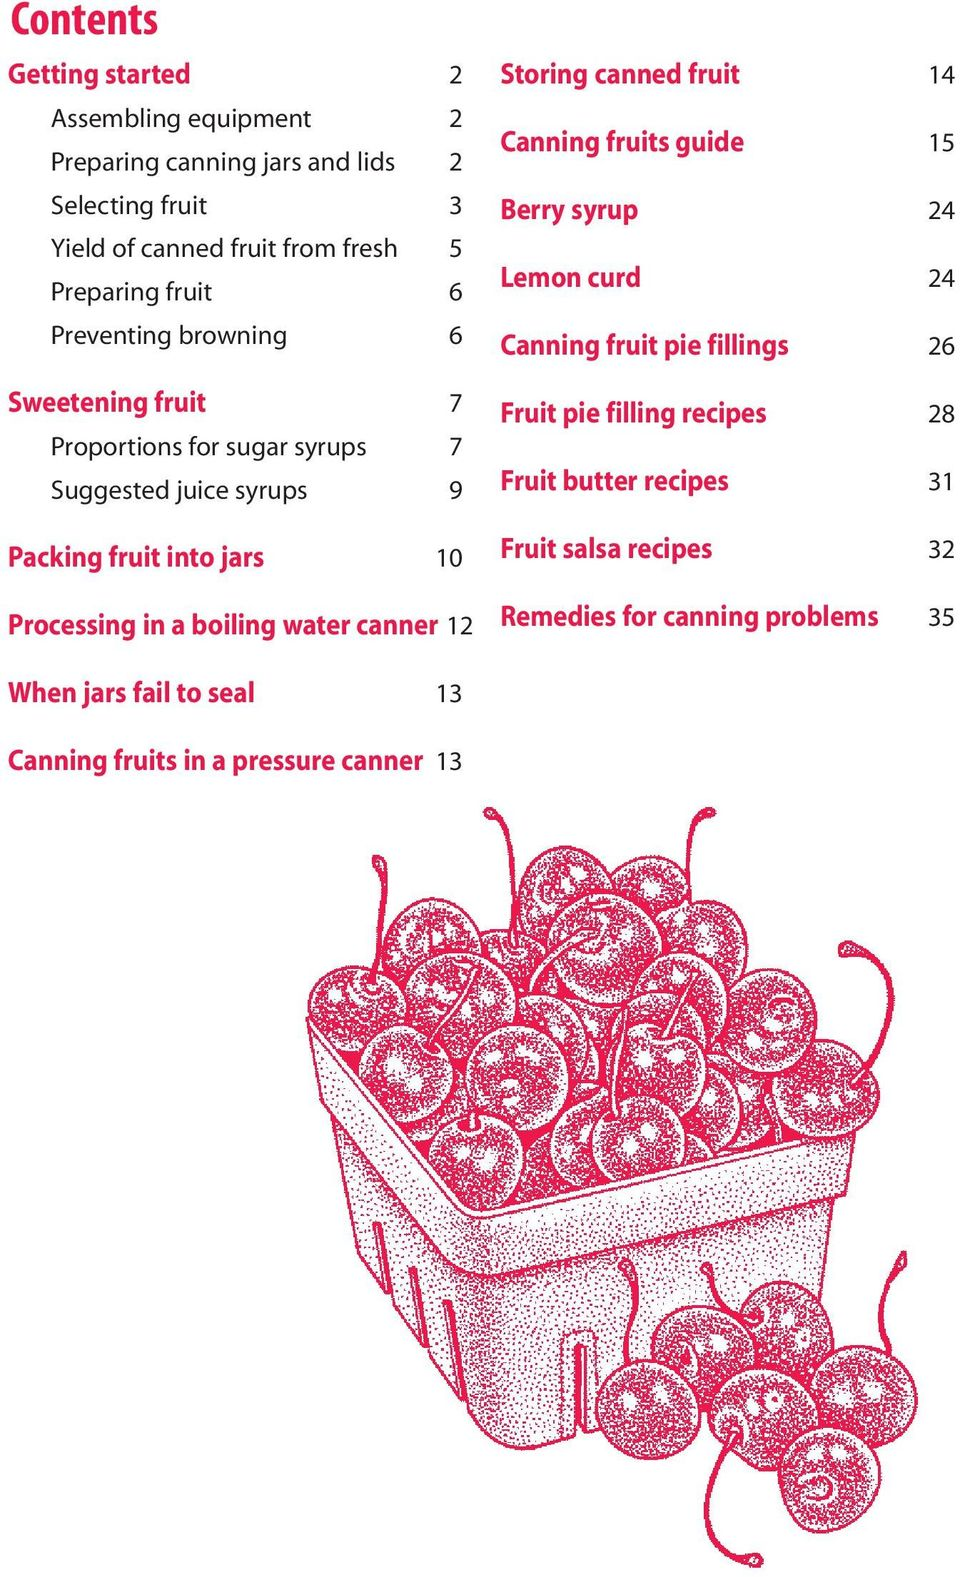 boiling water canner 12 Storing canned fruit 14 Canning fruits guide 15 Berry syrup 24 Lemon curd 24 Canning fruit pie fillings 26 Fruit pie filling